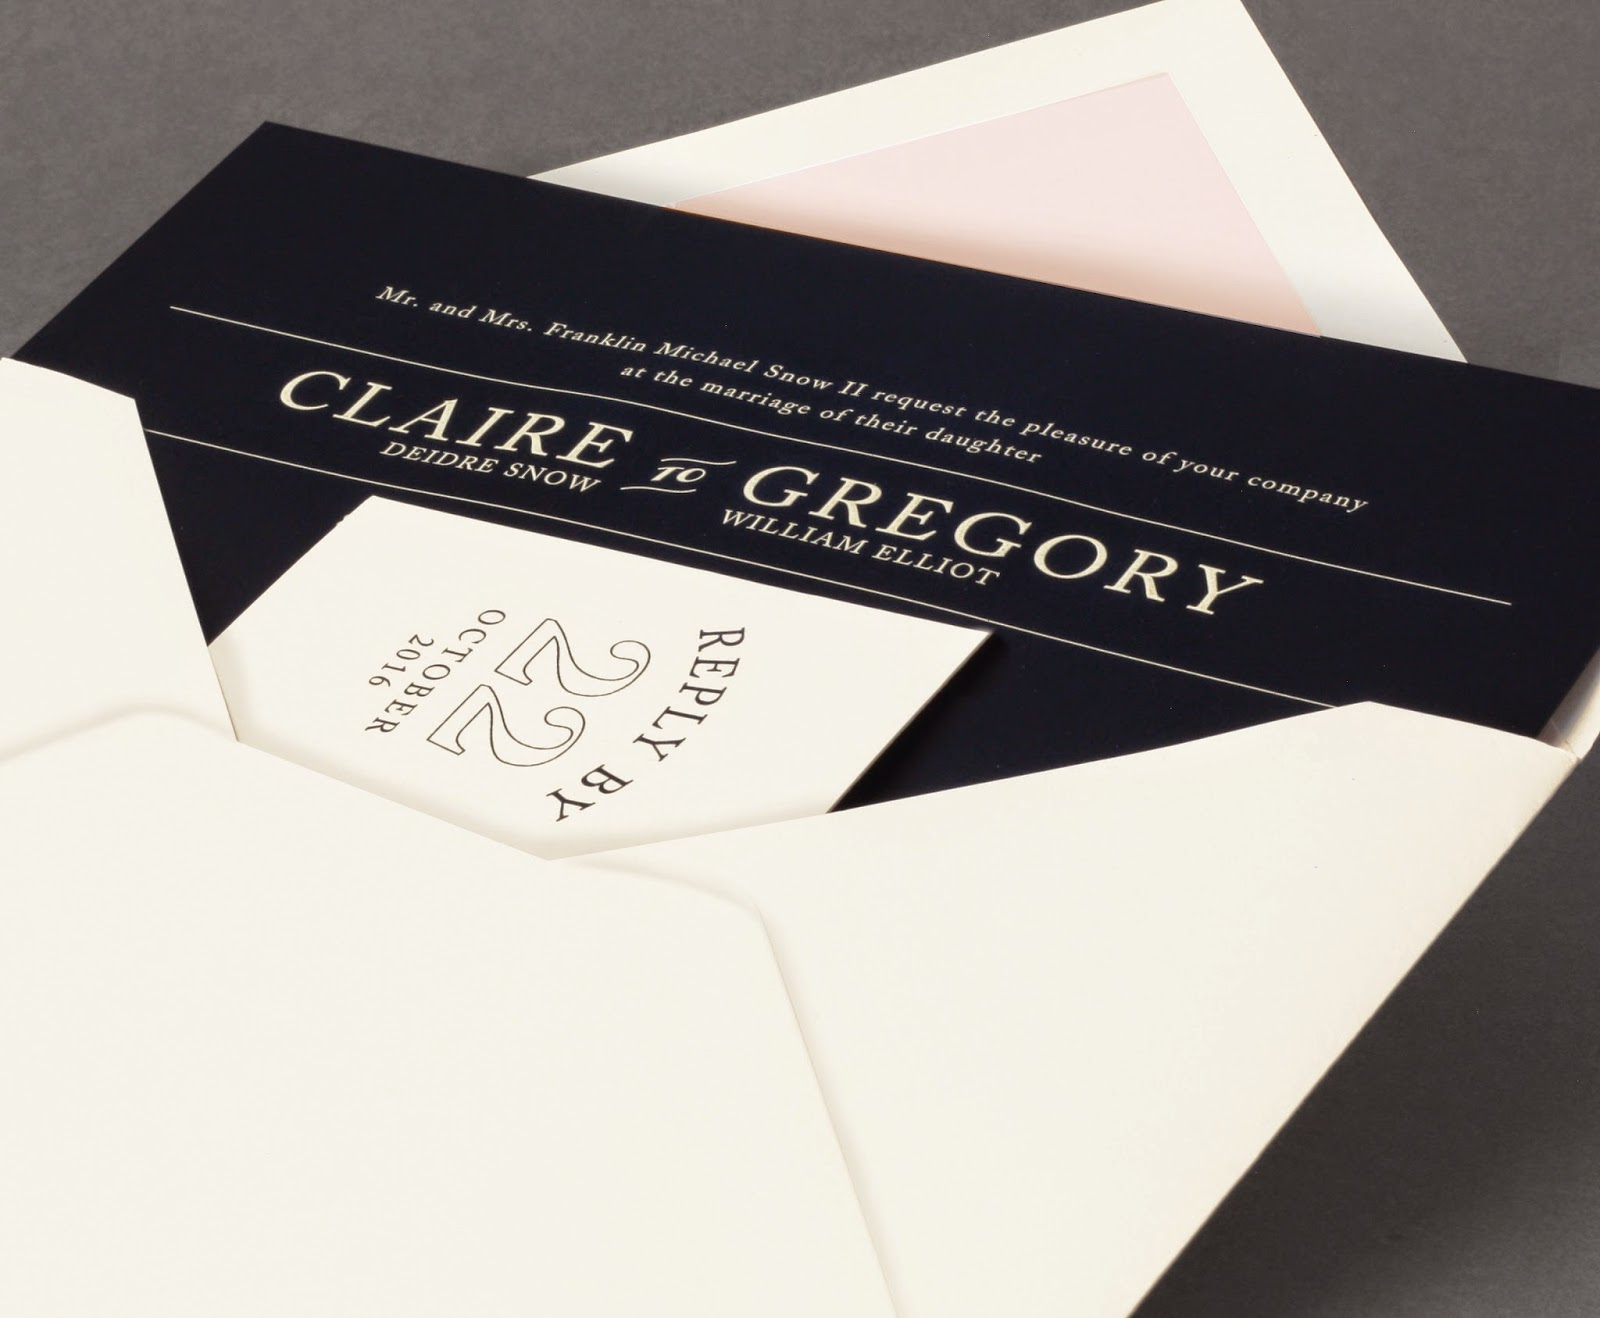 William arthur blog our new vera wang wedding album black and white the bold black and white stripes that define this invitation suite are quintessentially vera wang the addition of gold engraving to this design makes it stopboris Choice Image